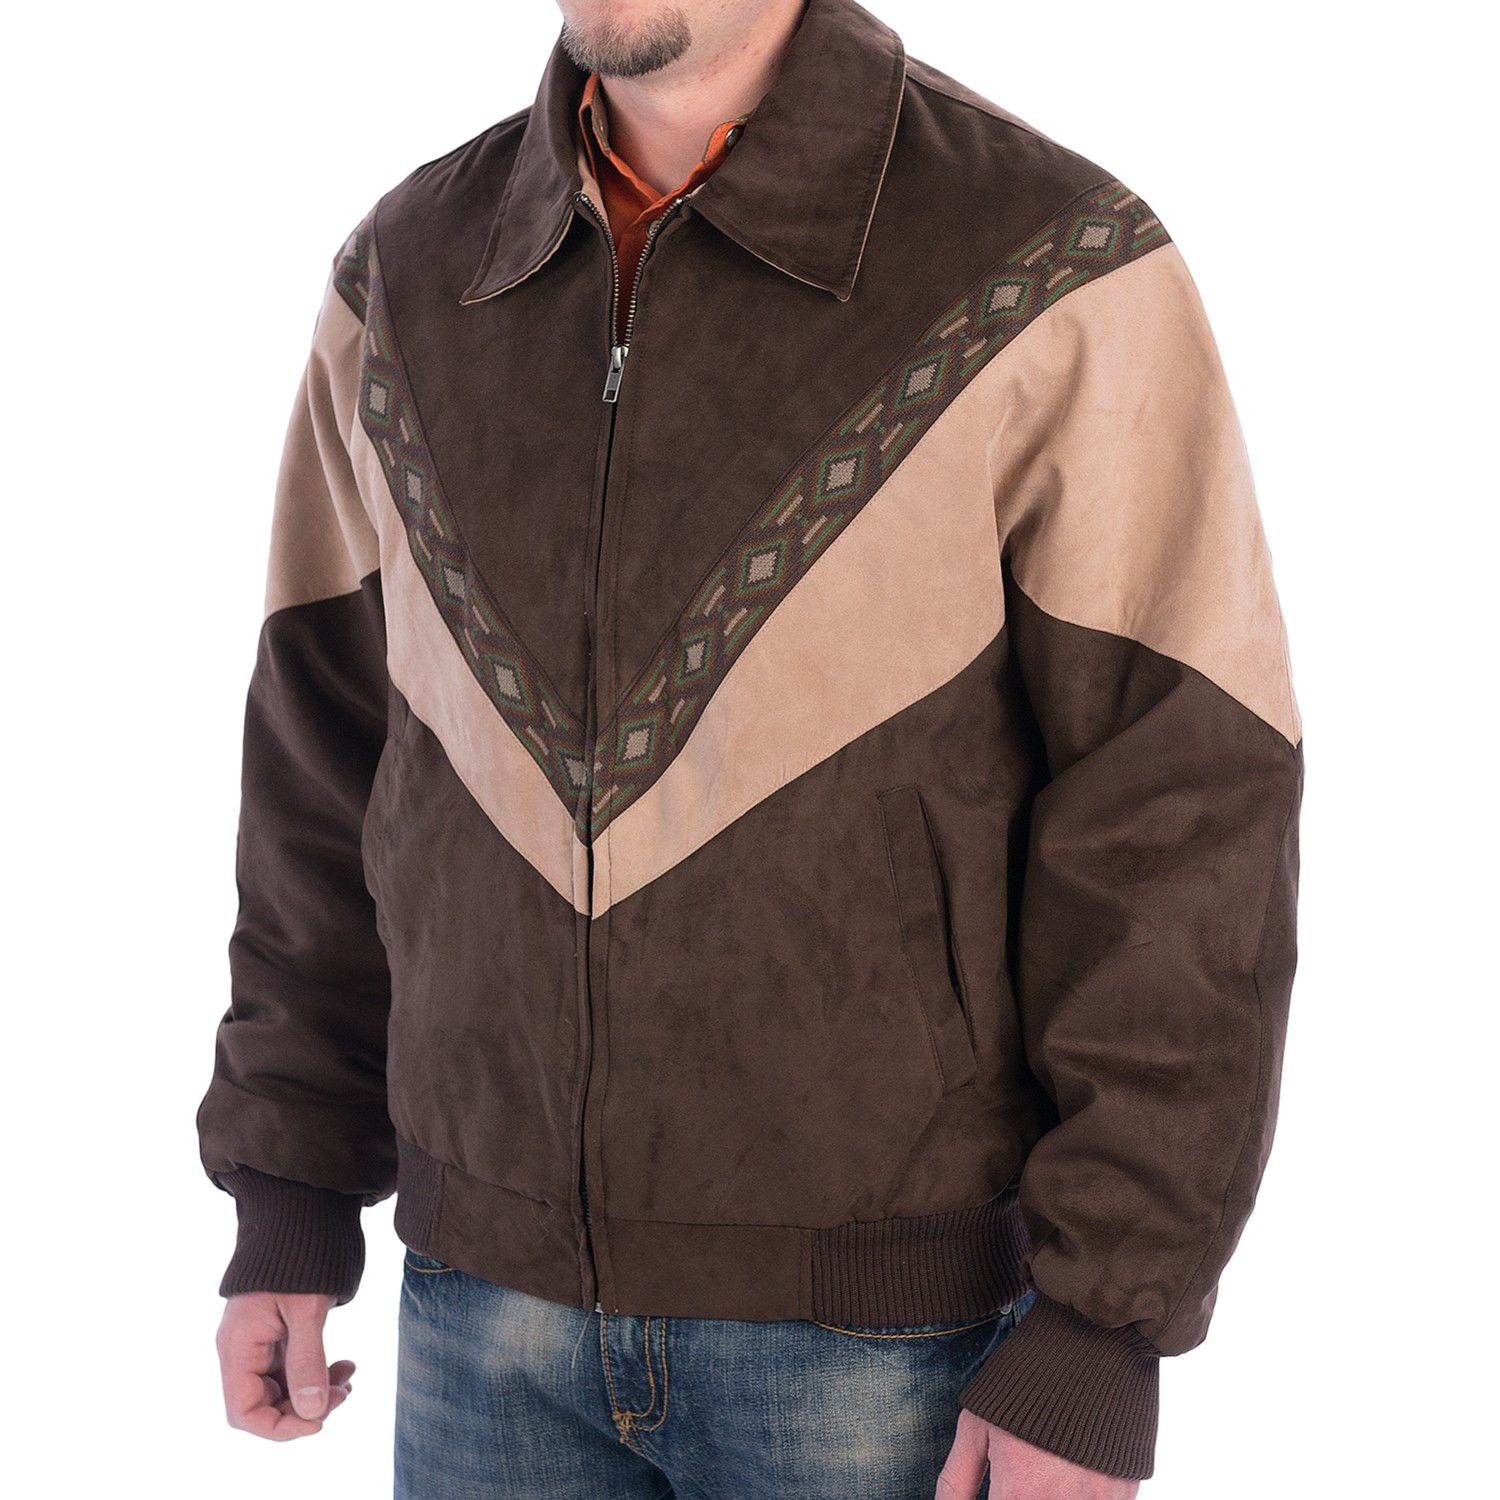 cripple creek muslim single men Cripple creek conceal carry men's antique chocolate distressed leather vest this vest has an allover distressed look but is soft to the touch features lapel collar, two front pockets and snap closure.